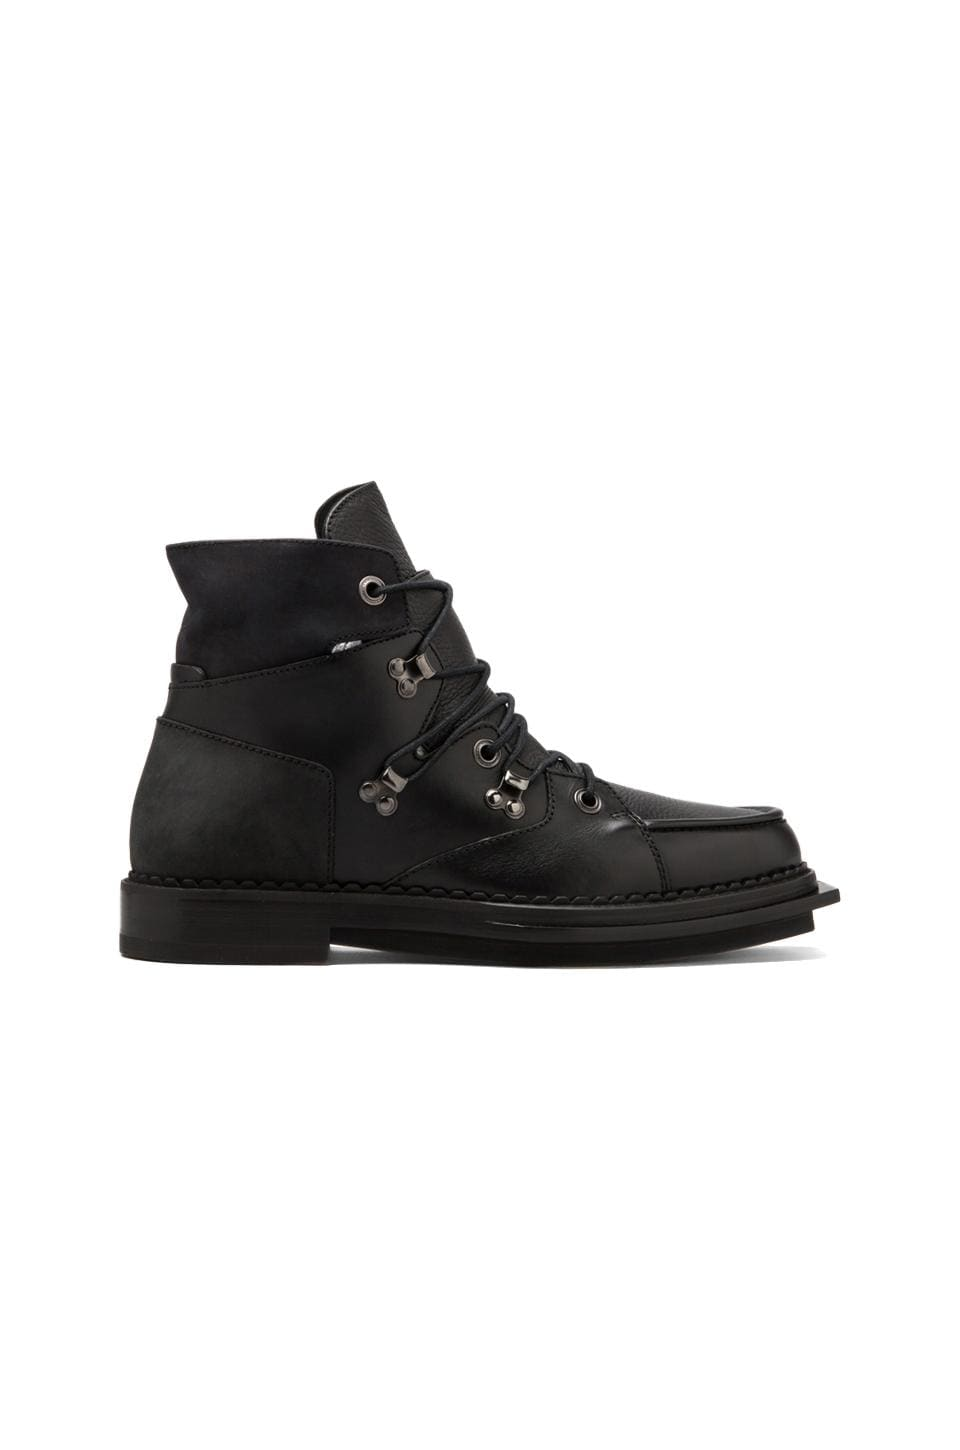 McQ Alexander McQueen Lipp Boot in Black